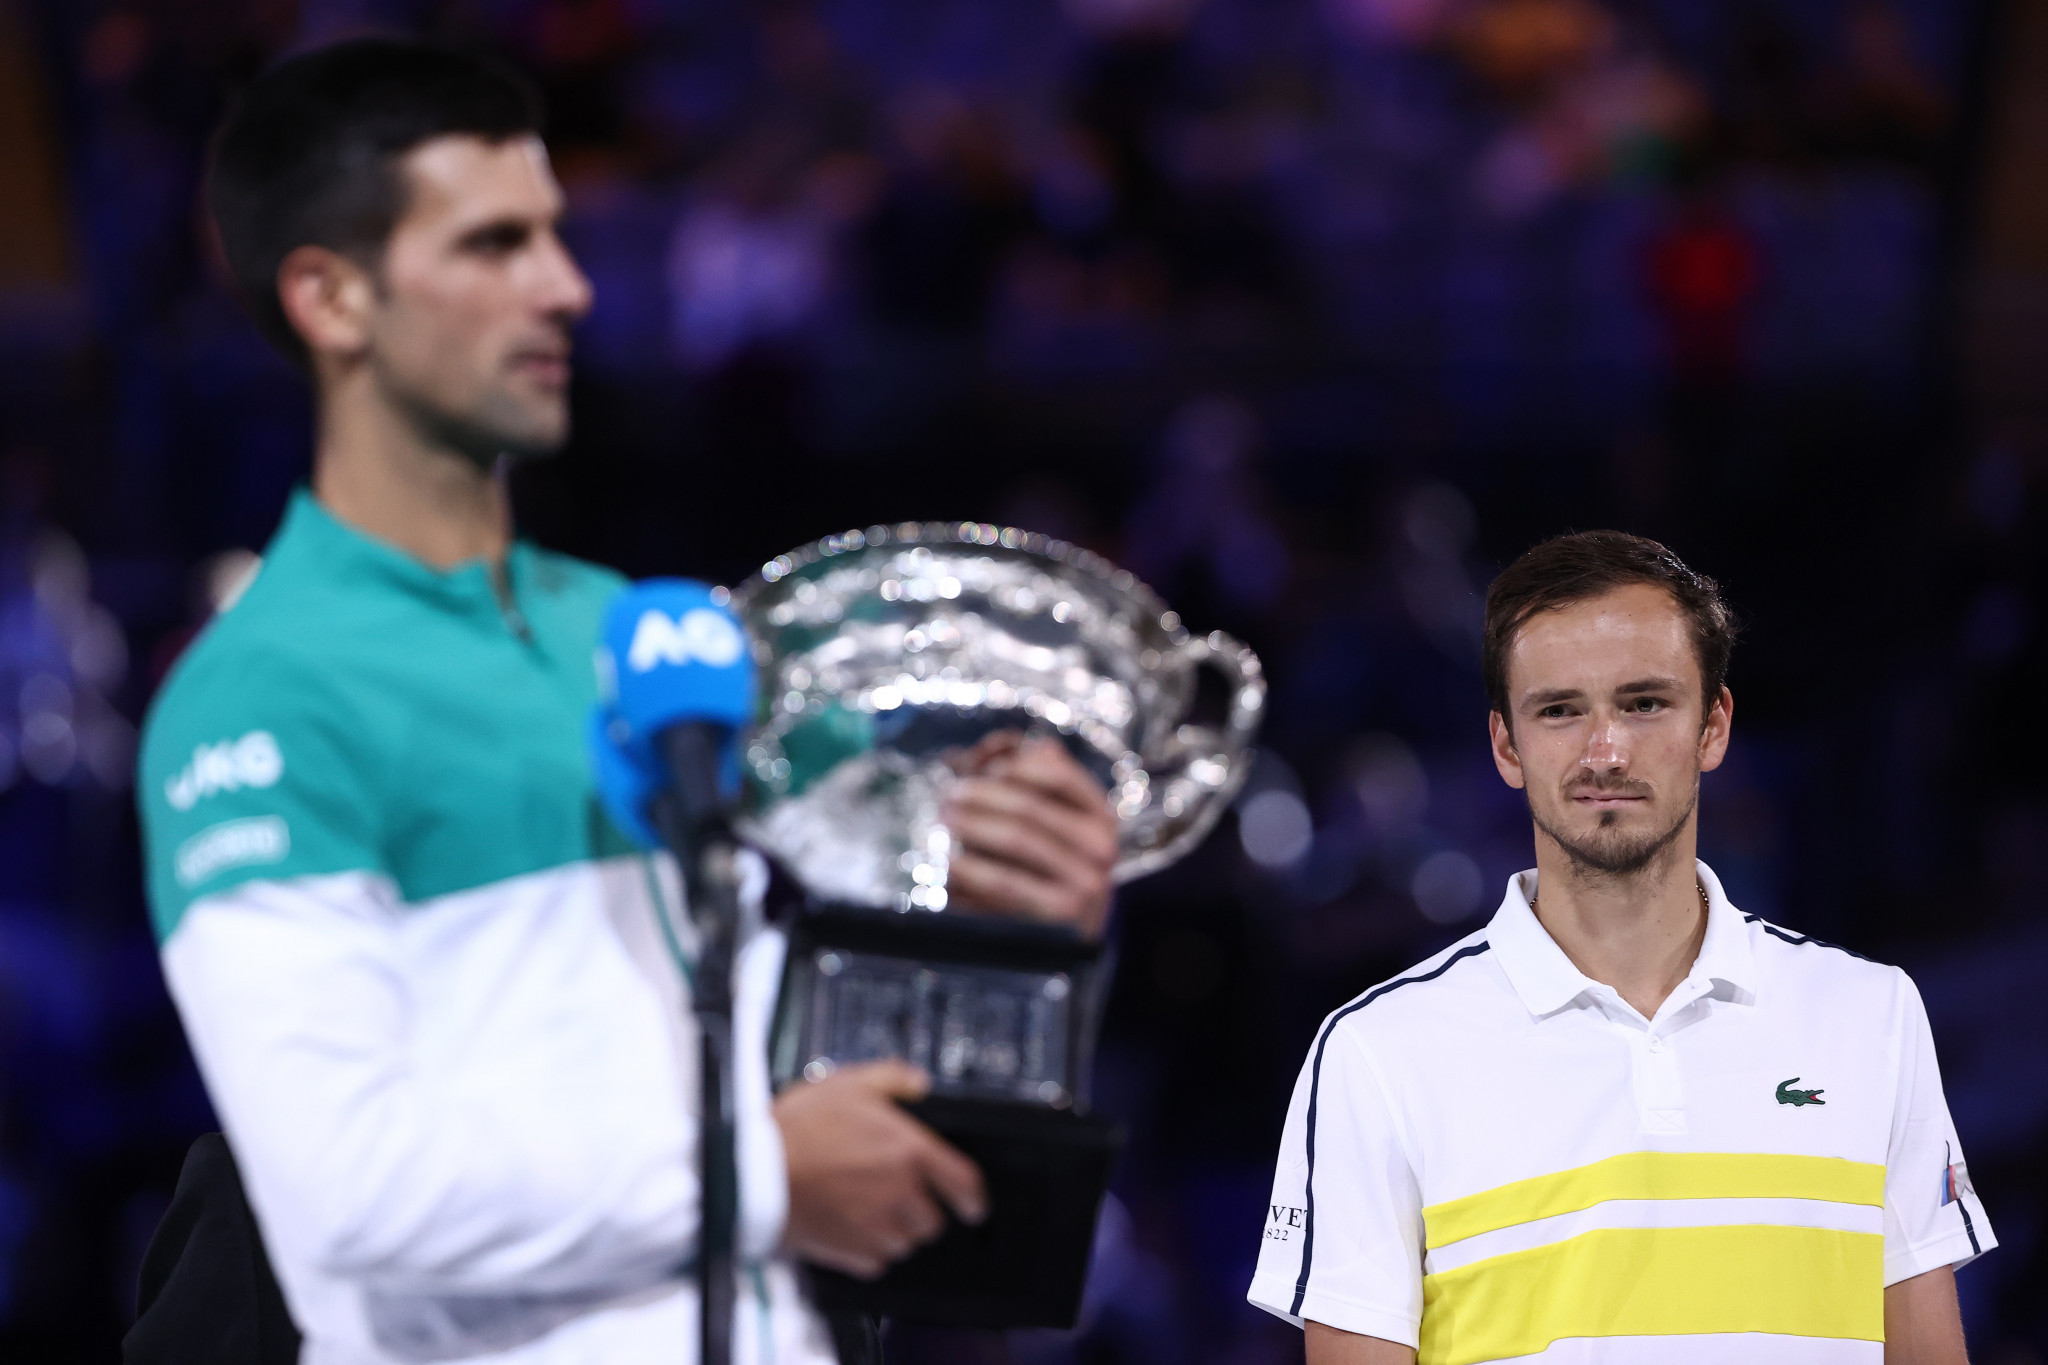 Medvedev watches on as Djokovic gives his victory speech with the trophy in his arms ©Getty Images